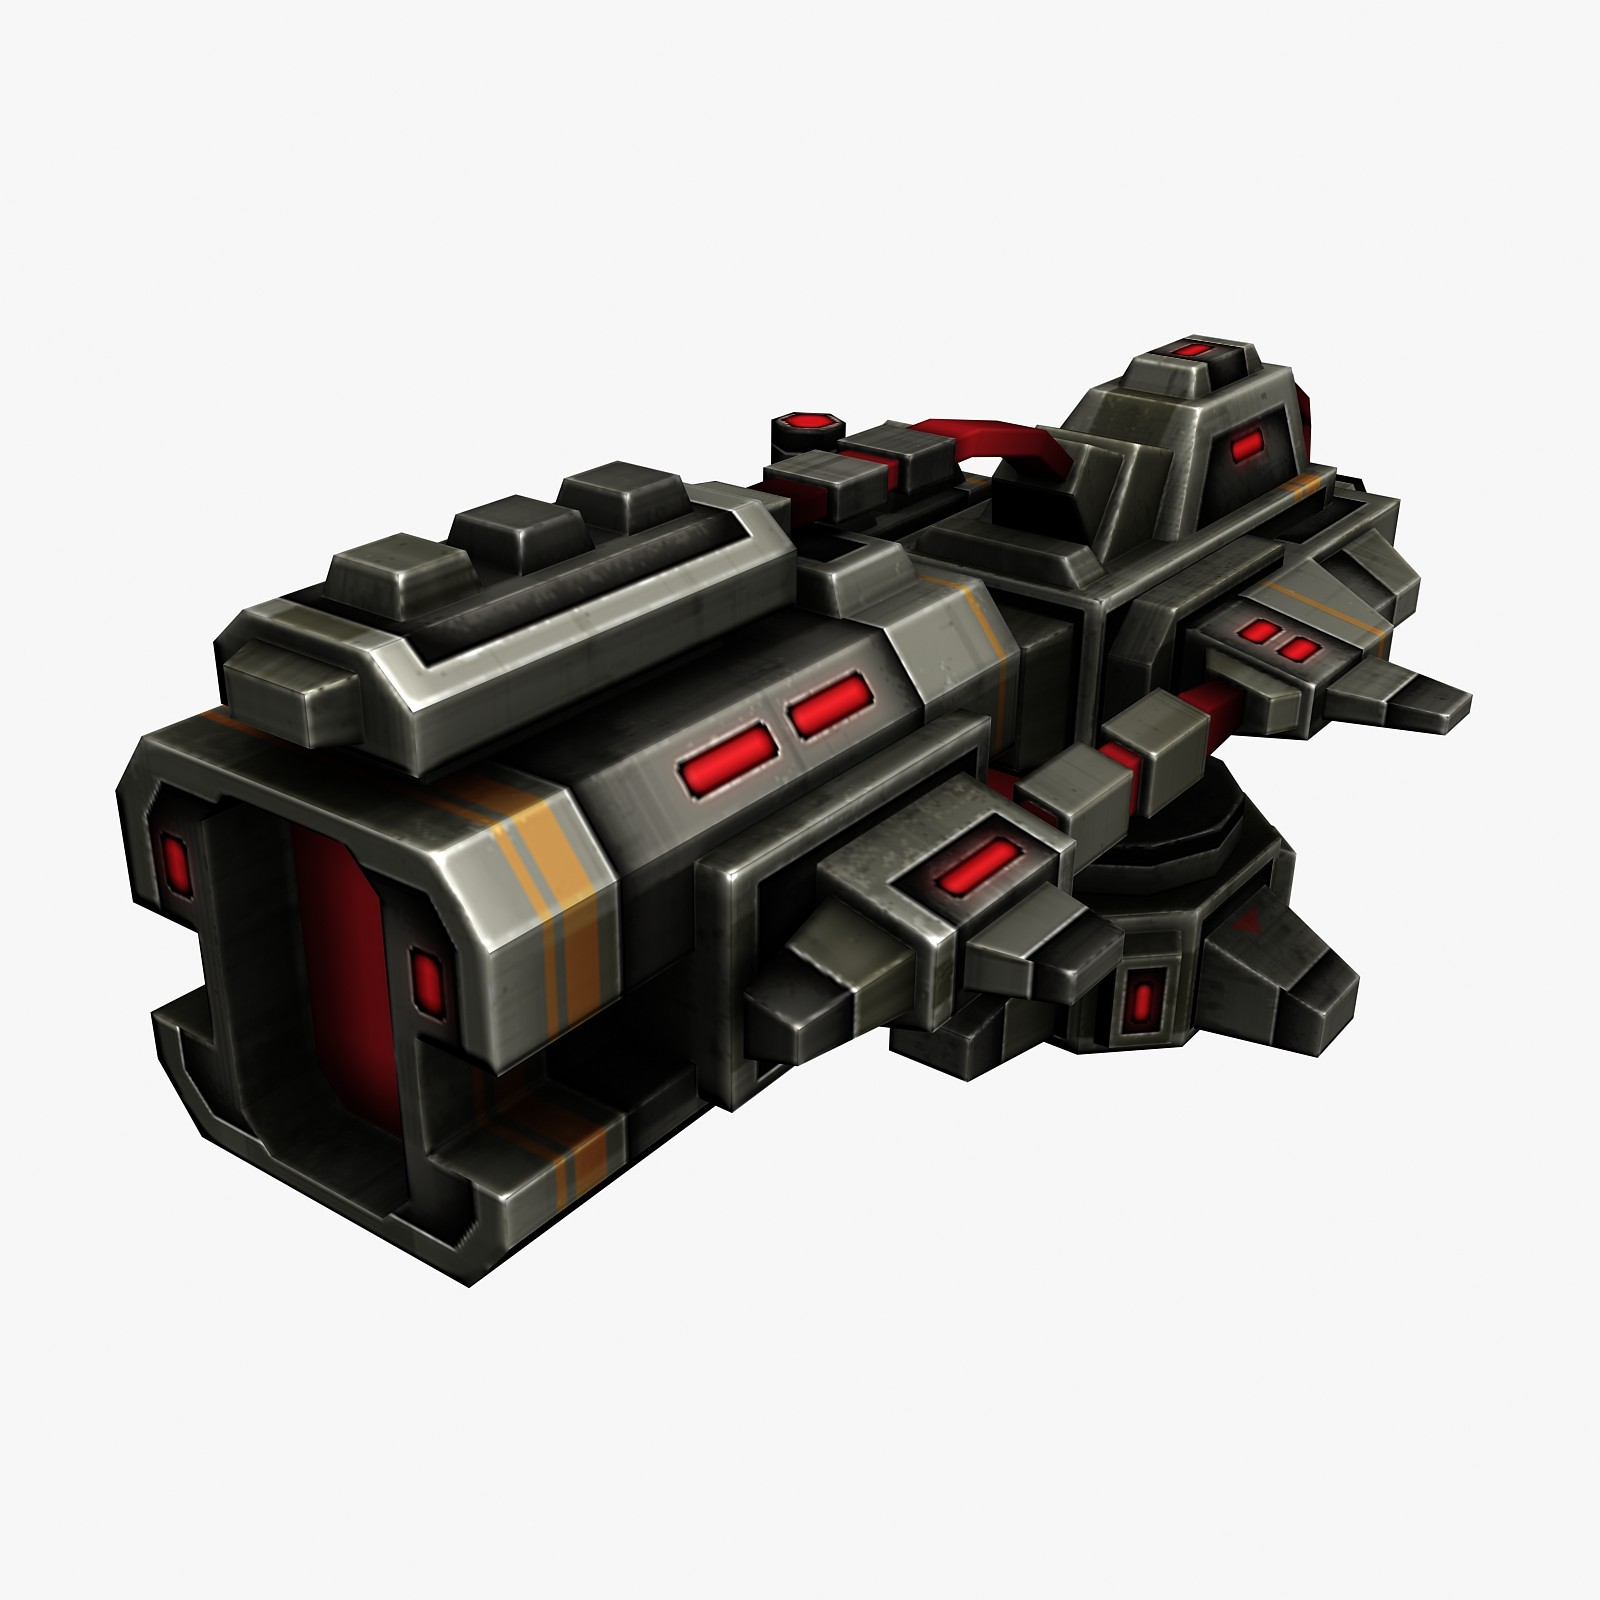 energy_weapon_4_preview_1.jpg